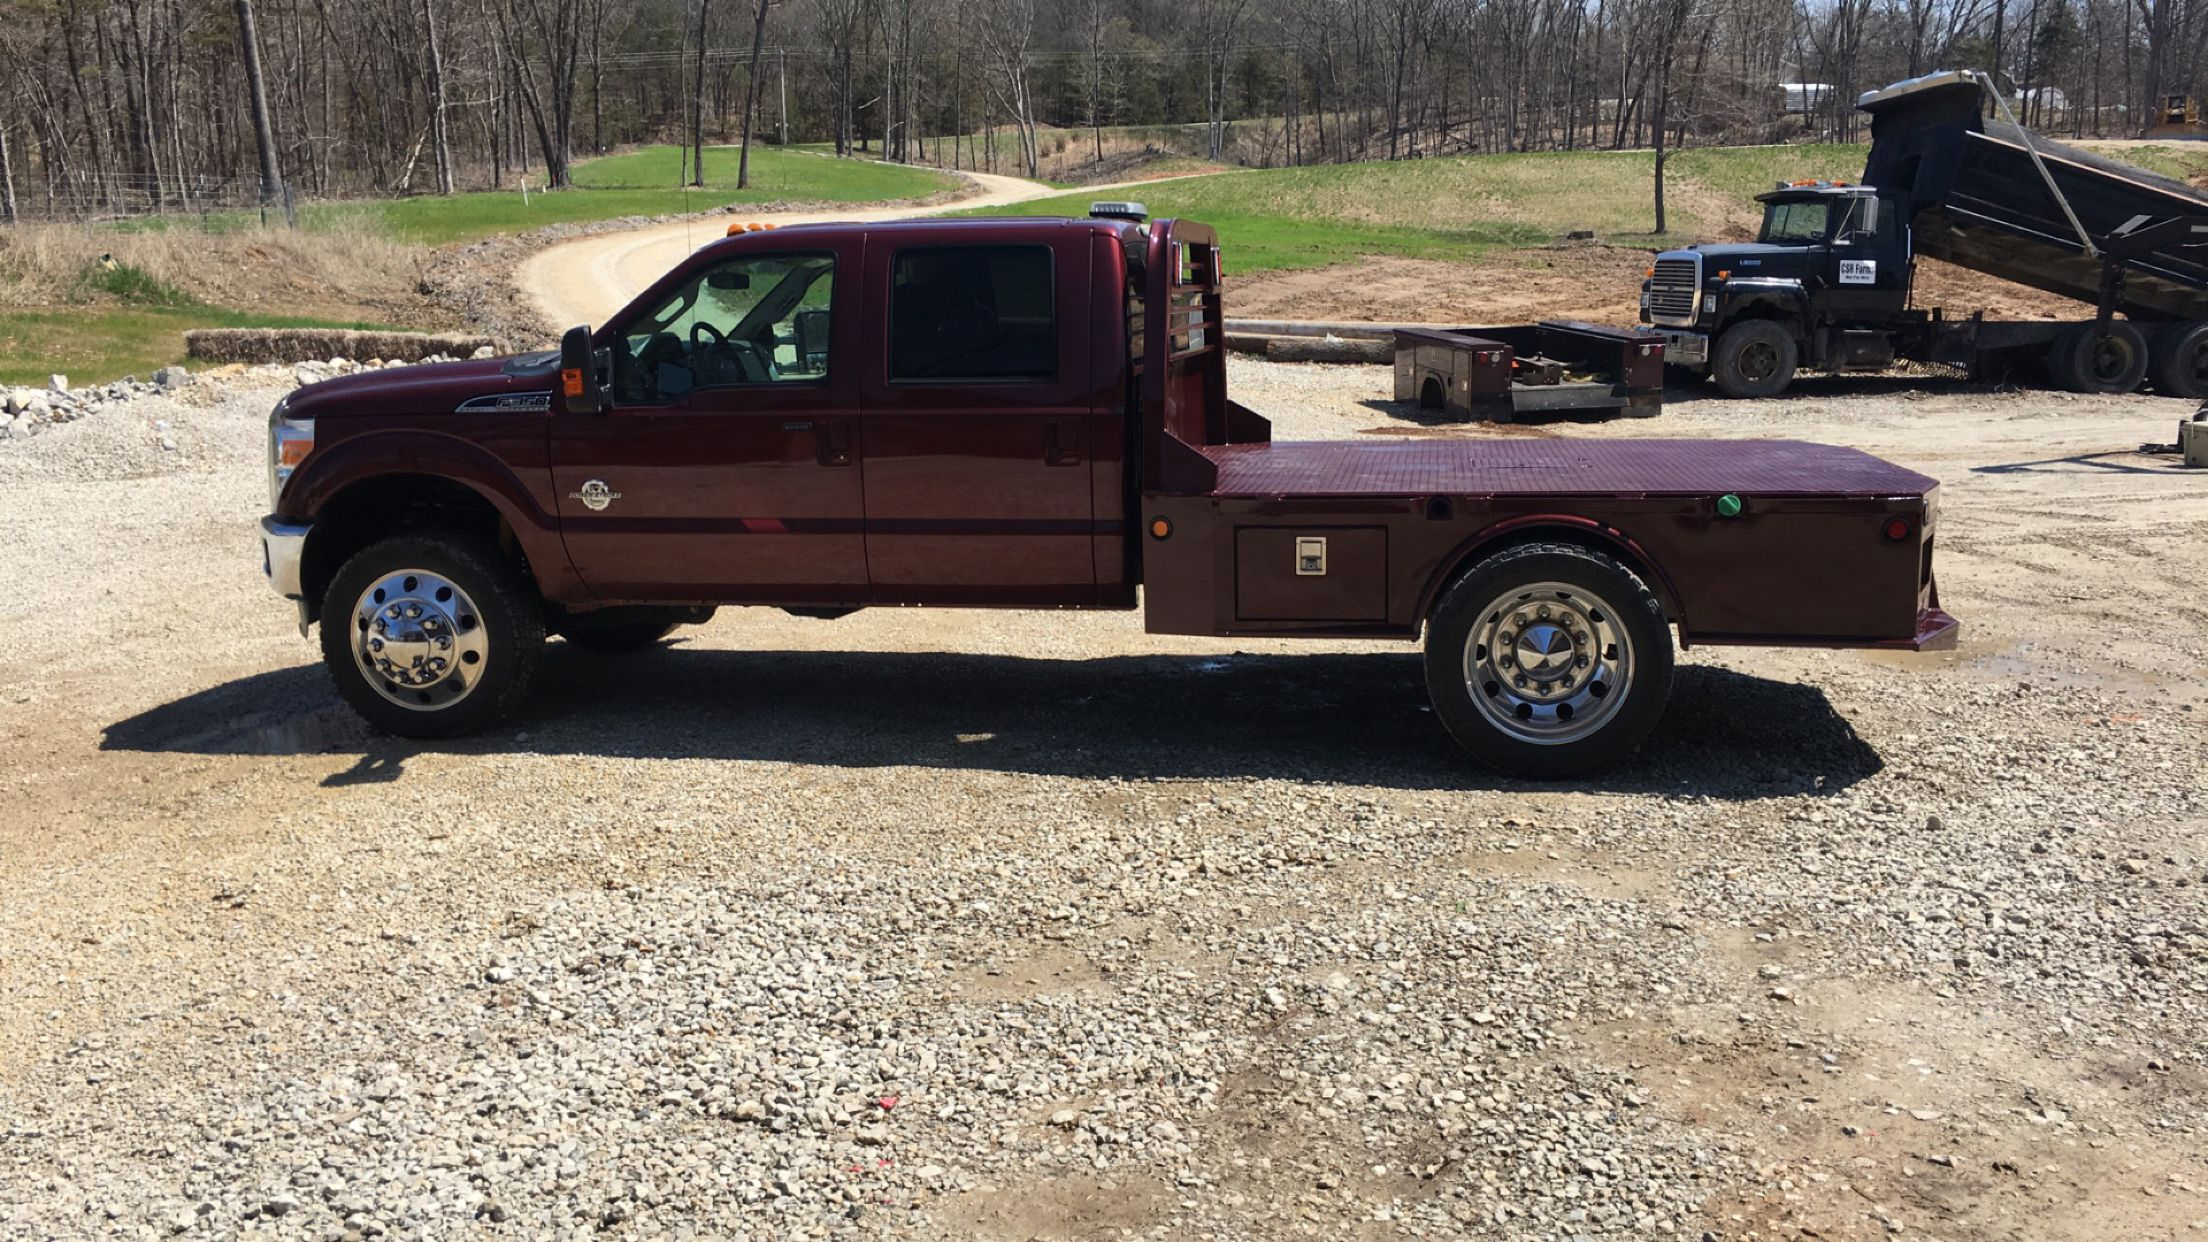 Cm Sk Paint To Match On Ford F550 Custom Truck Beds Trucks Work Trailer